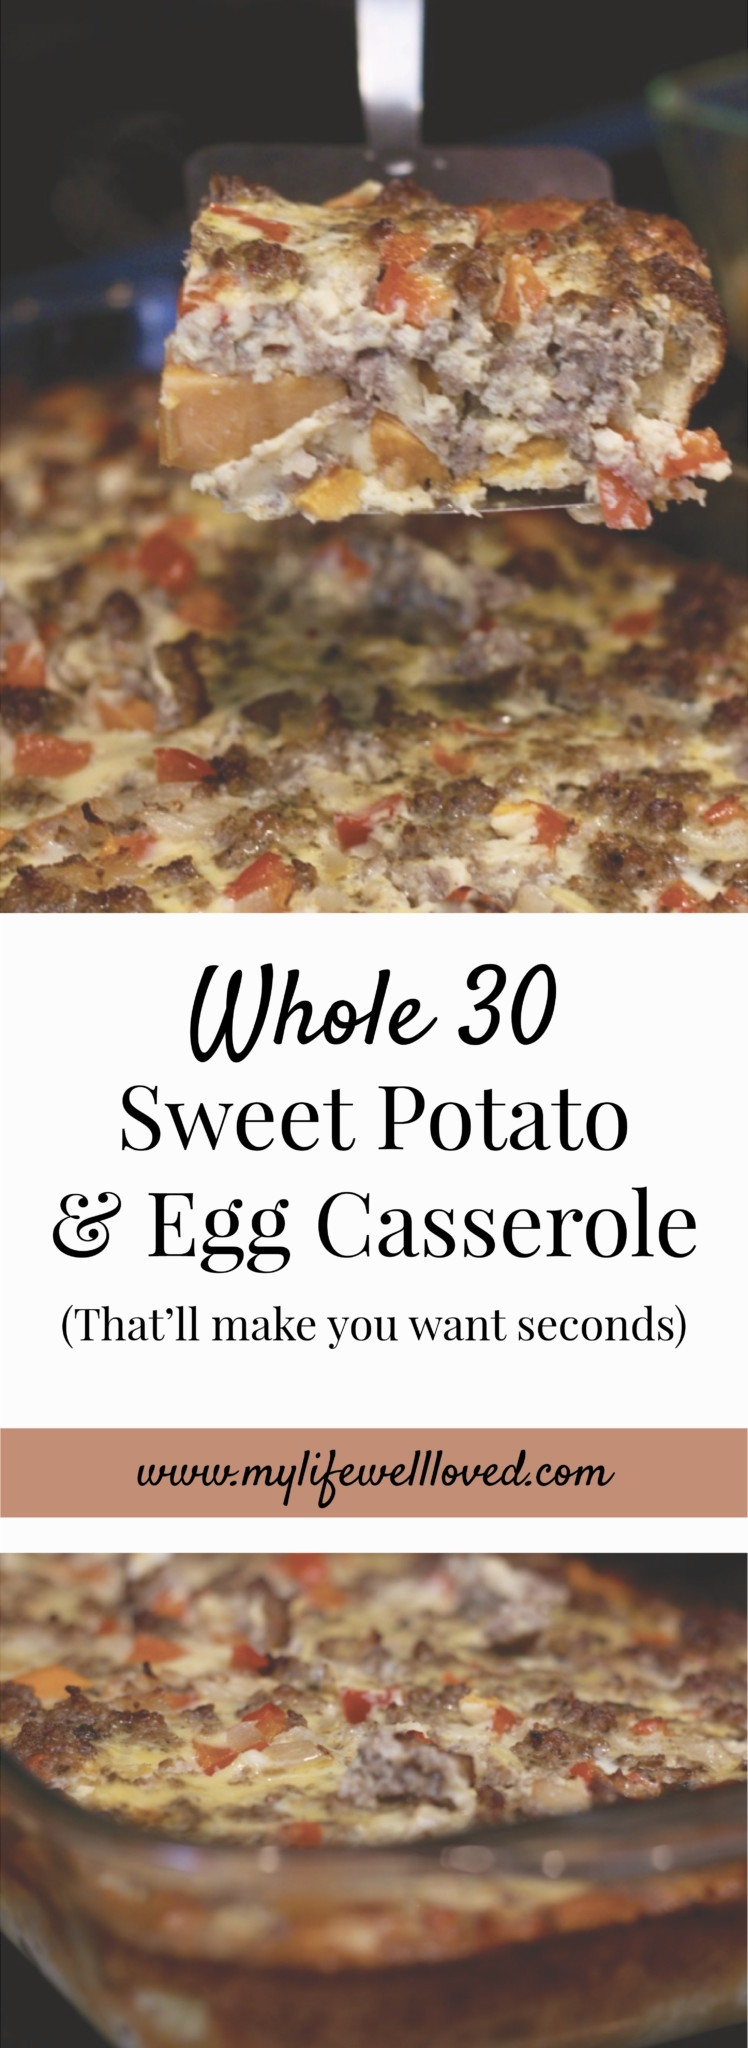 Whole30 Breakfast Casserole from Heather of MyLifeWellLoved.com // whole30 breakfast ideas - this is great to cook on Sunday and eat all week long